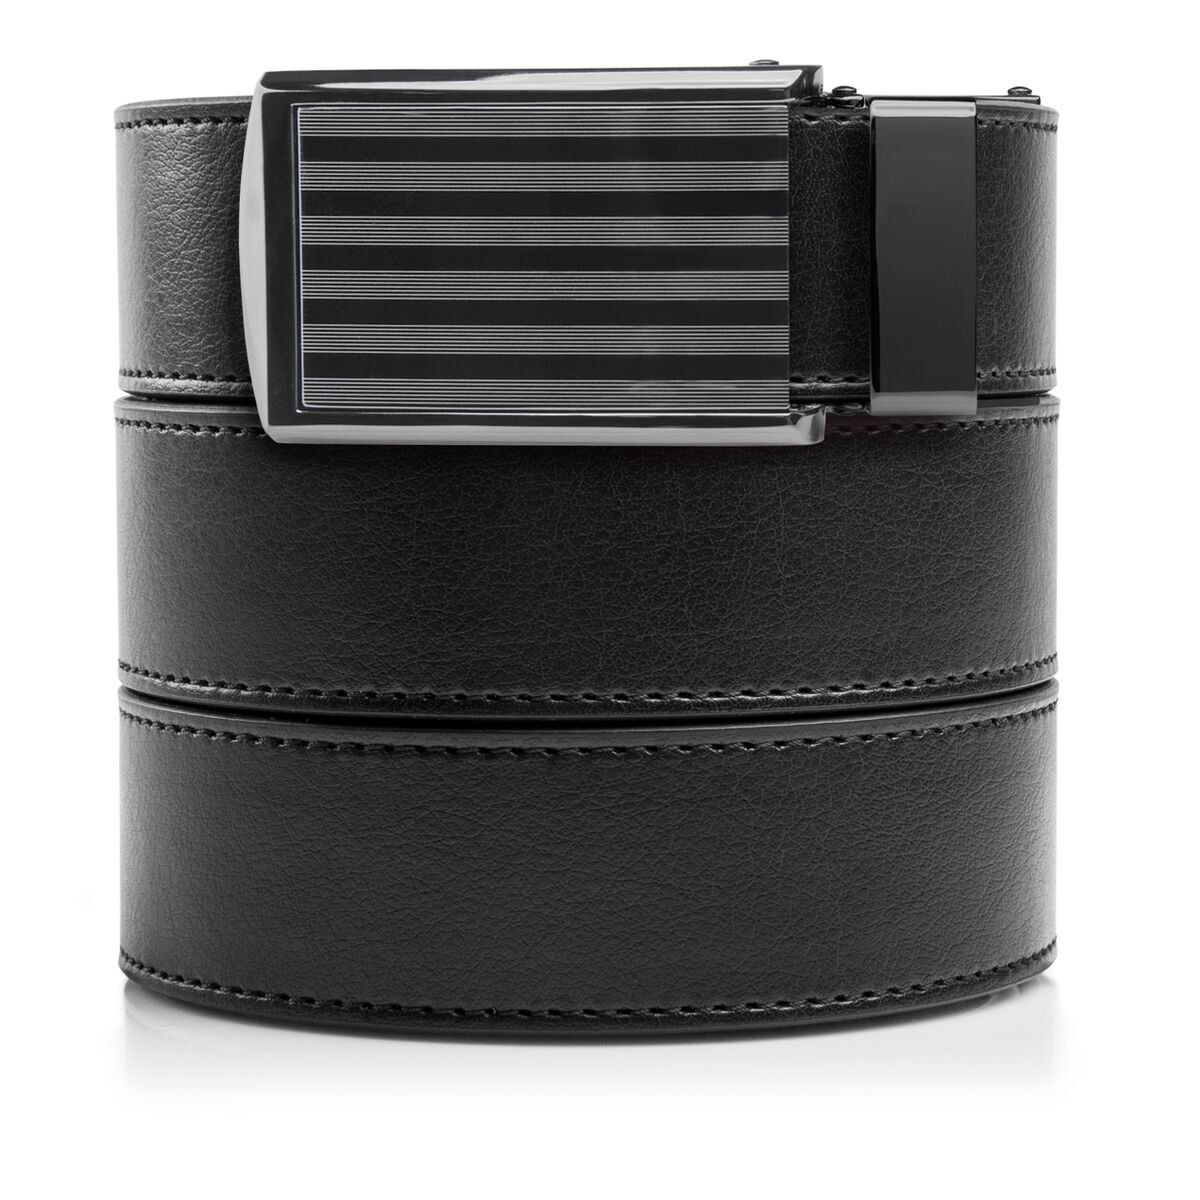 SlideBelts Men's Vegan Leather Belt without Holes - Bar Striped Buckle/Black Leather (Trim-to-fit: Up to 48'' Waist)